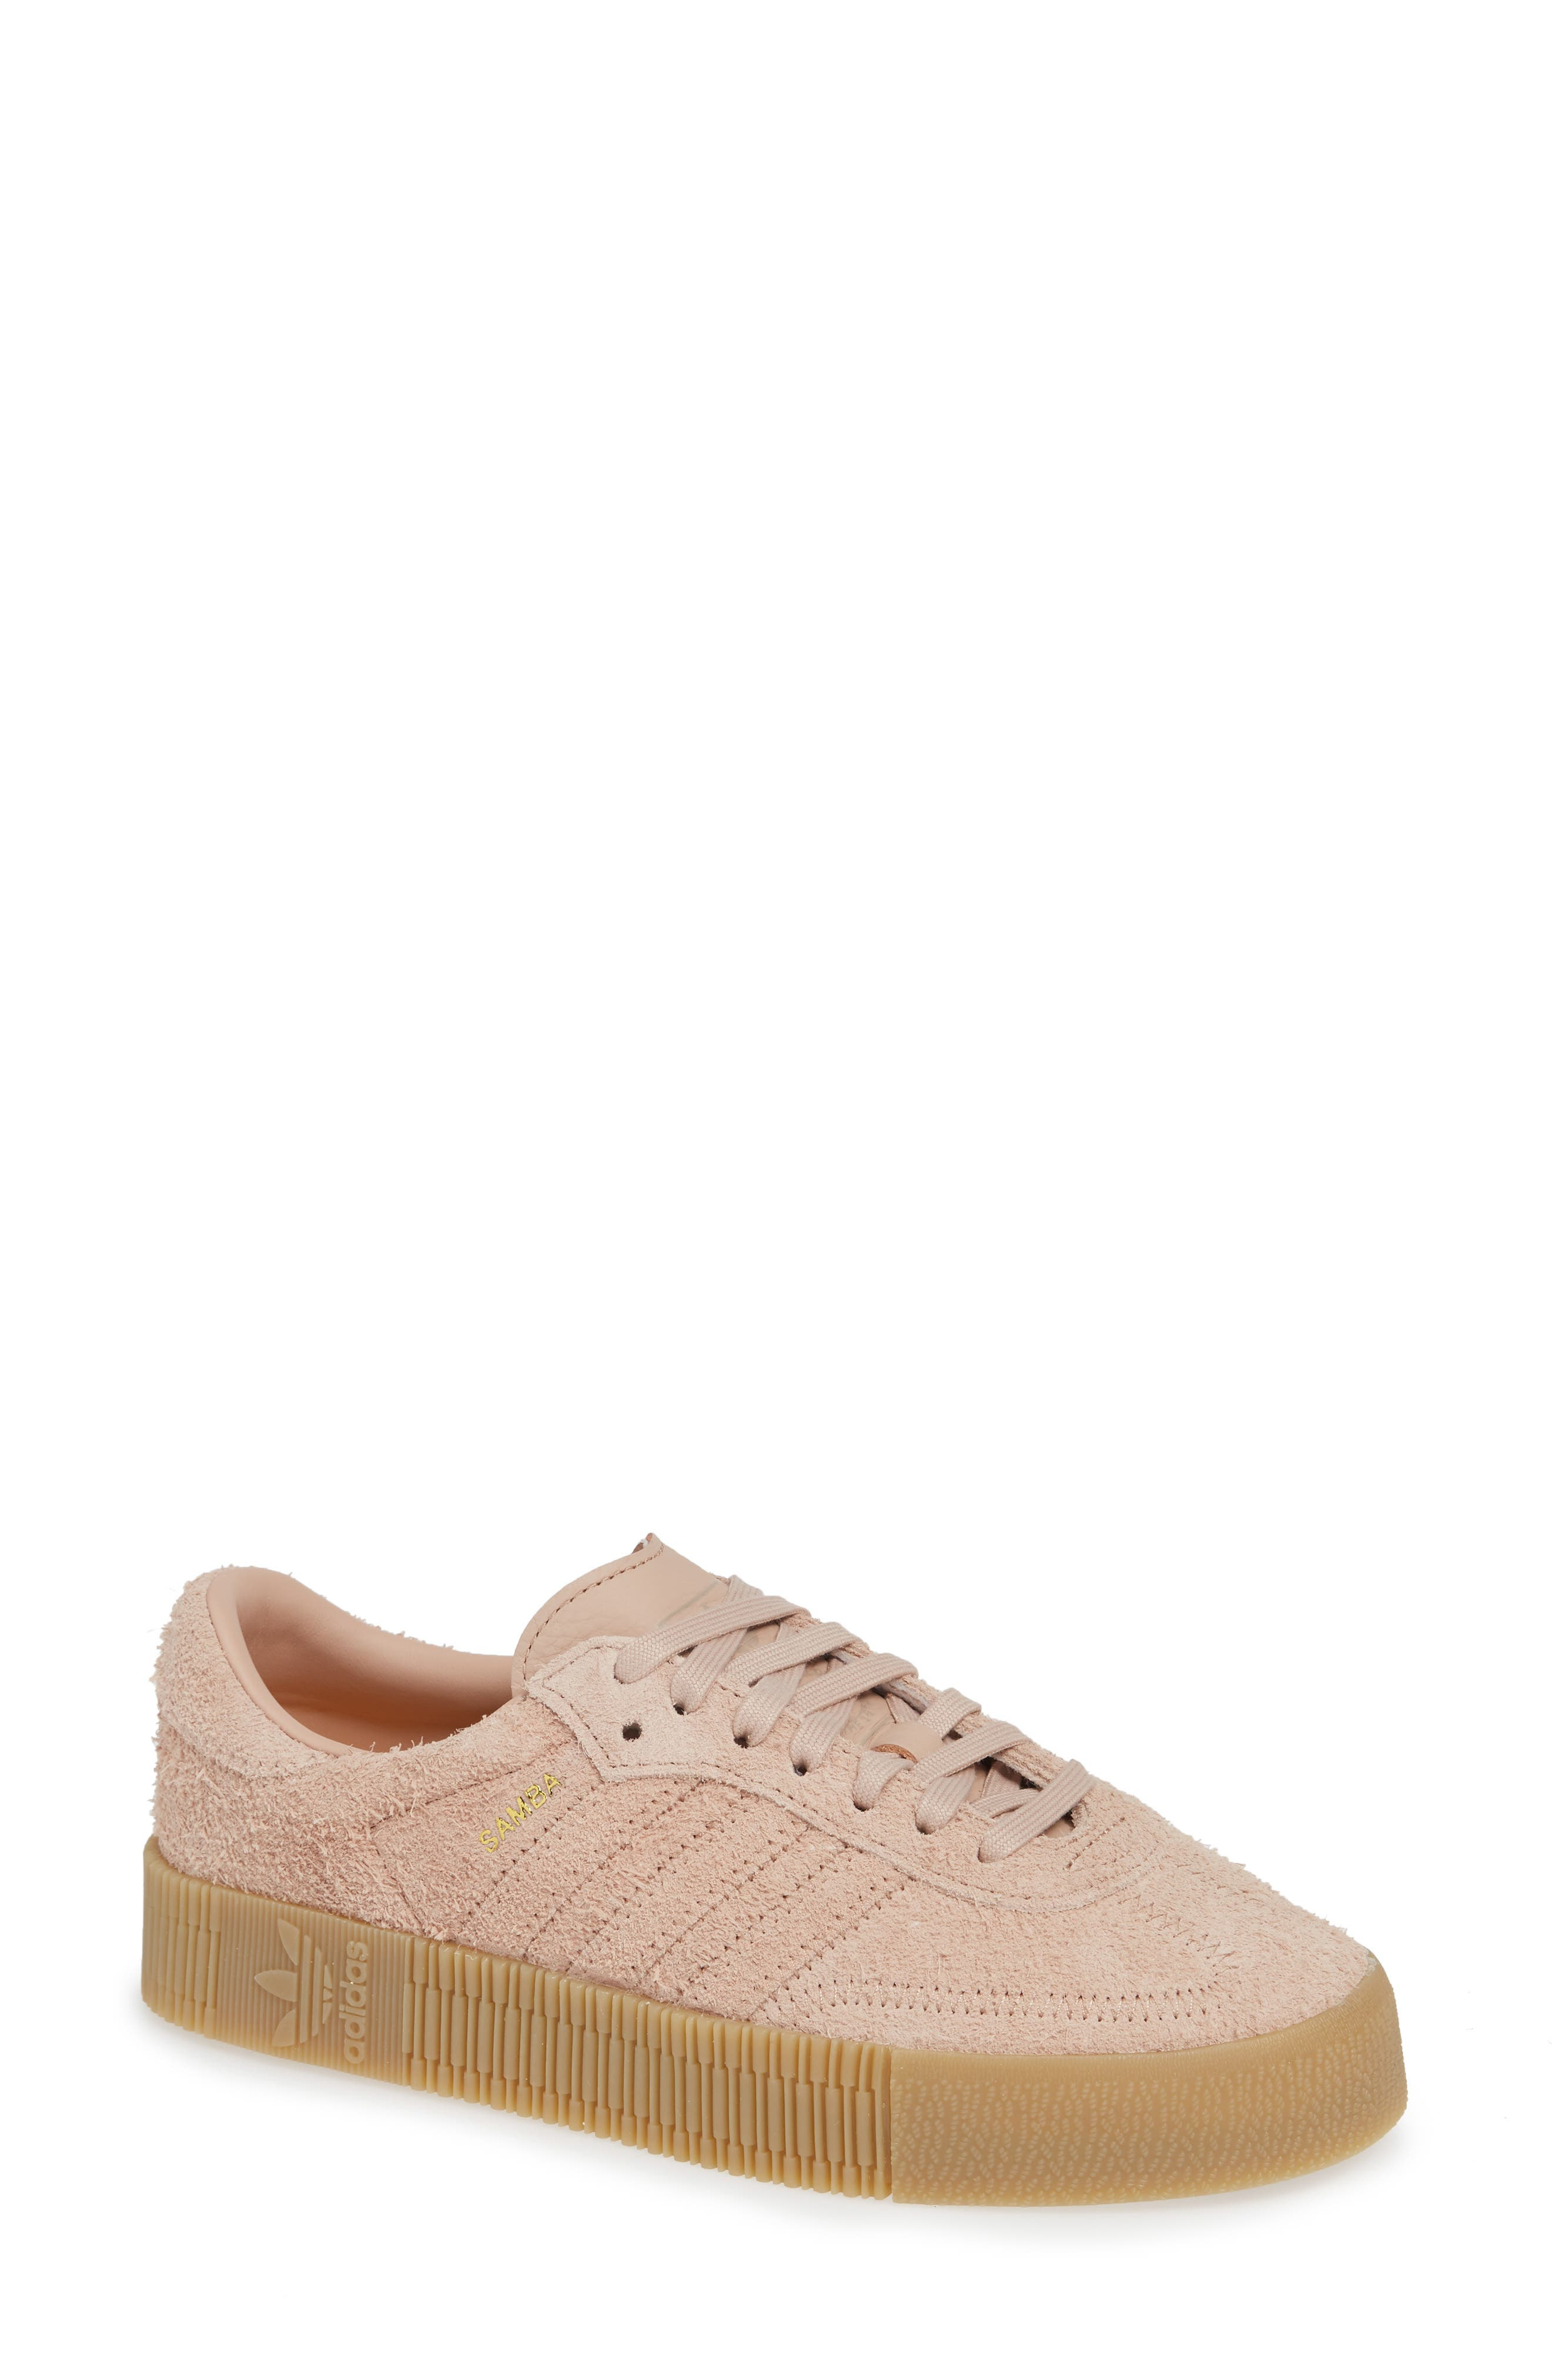 b4f60c953e8 raises the game of a classic sneaker with exposed seam details and the  signature trio of bright stripes. Style Name  Adidas Samba Rose Sneaker  (Women).